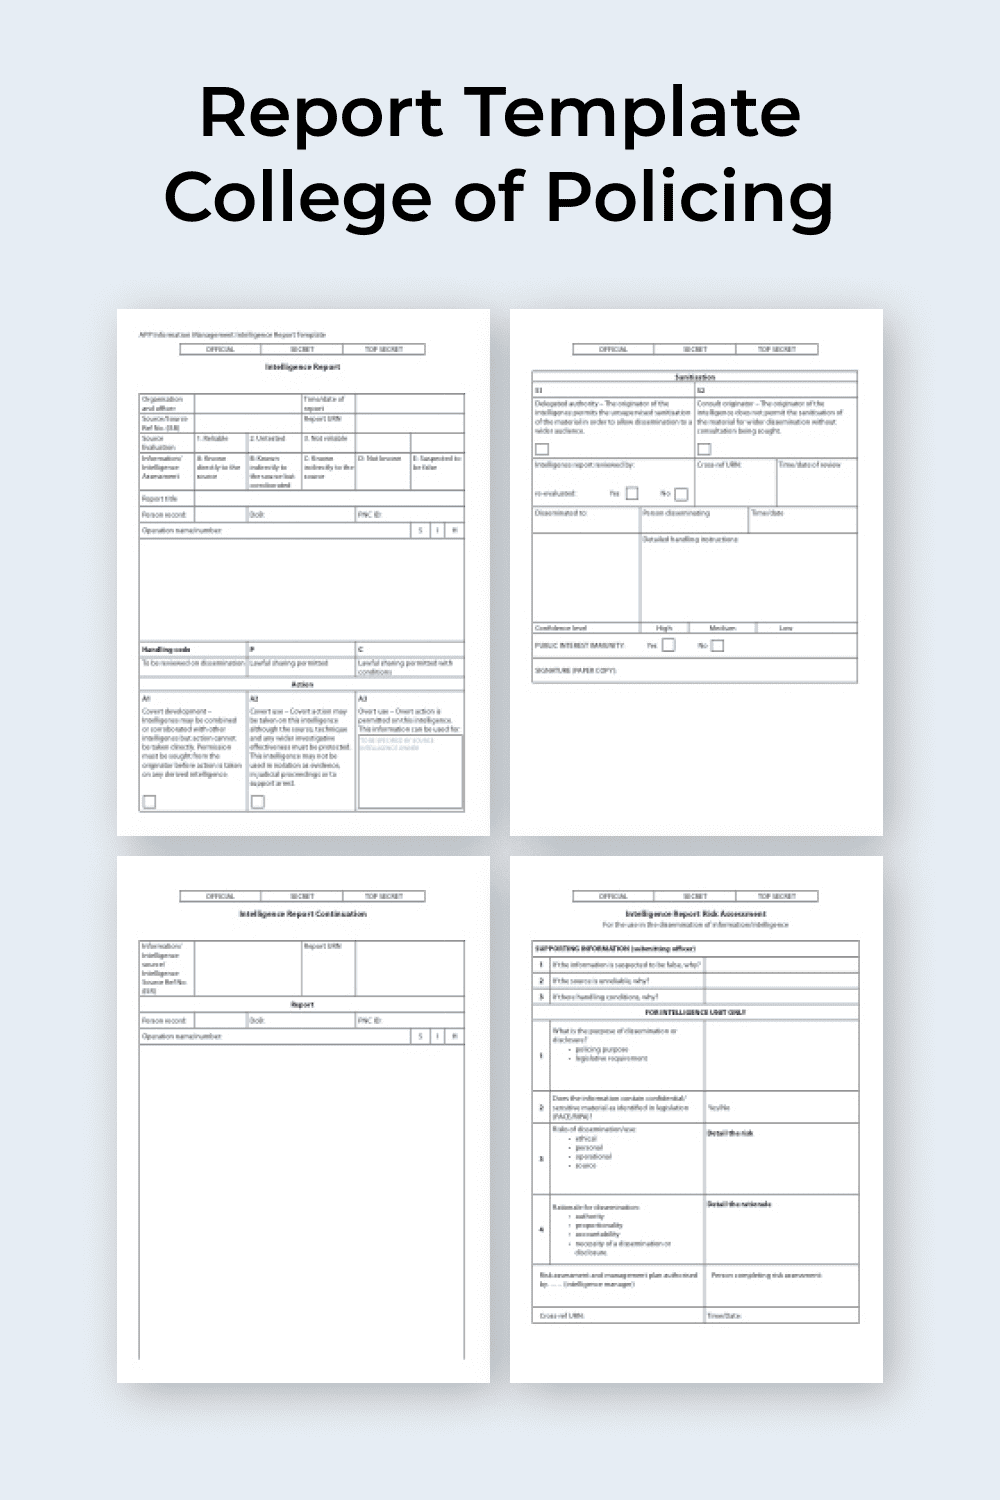 Report Template College of Policing.